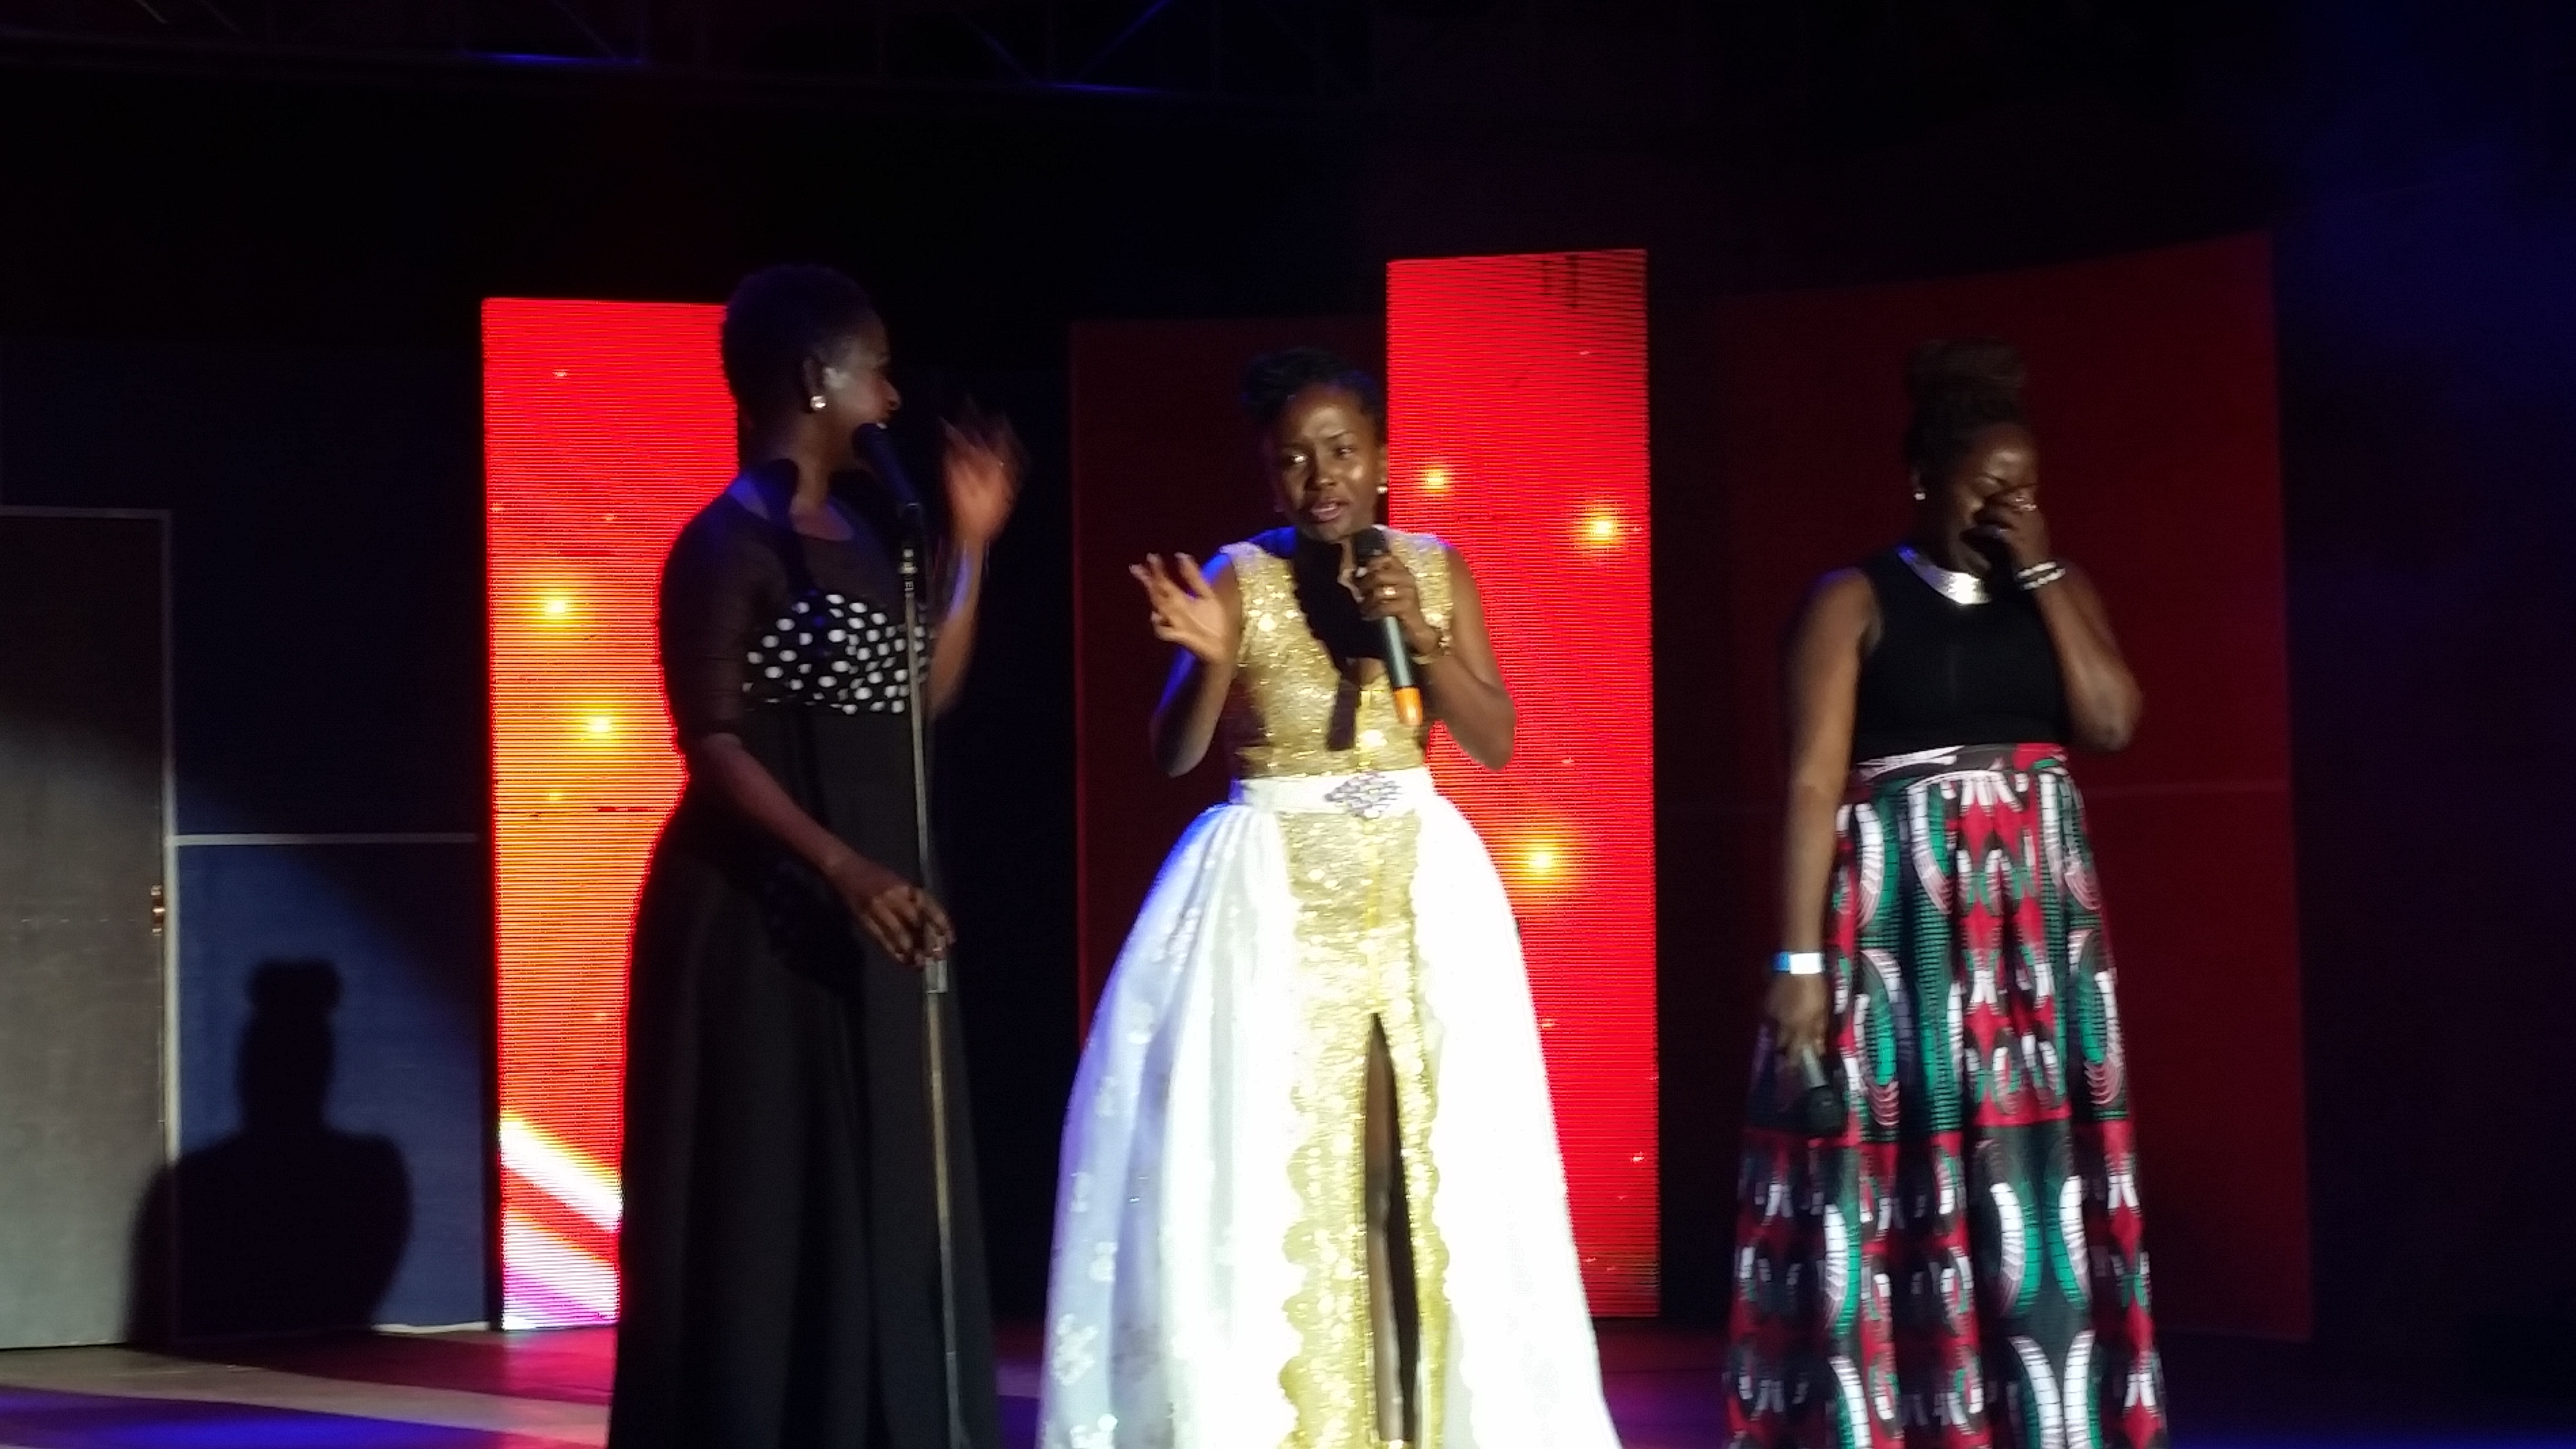 Lillian Mbabazi, Kansiime and Shane put on a flawless show